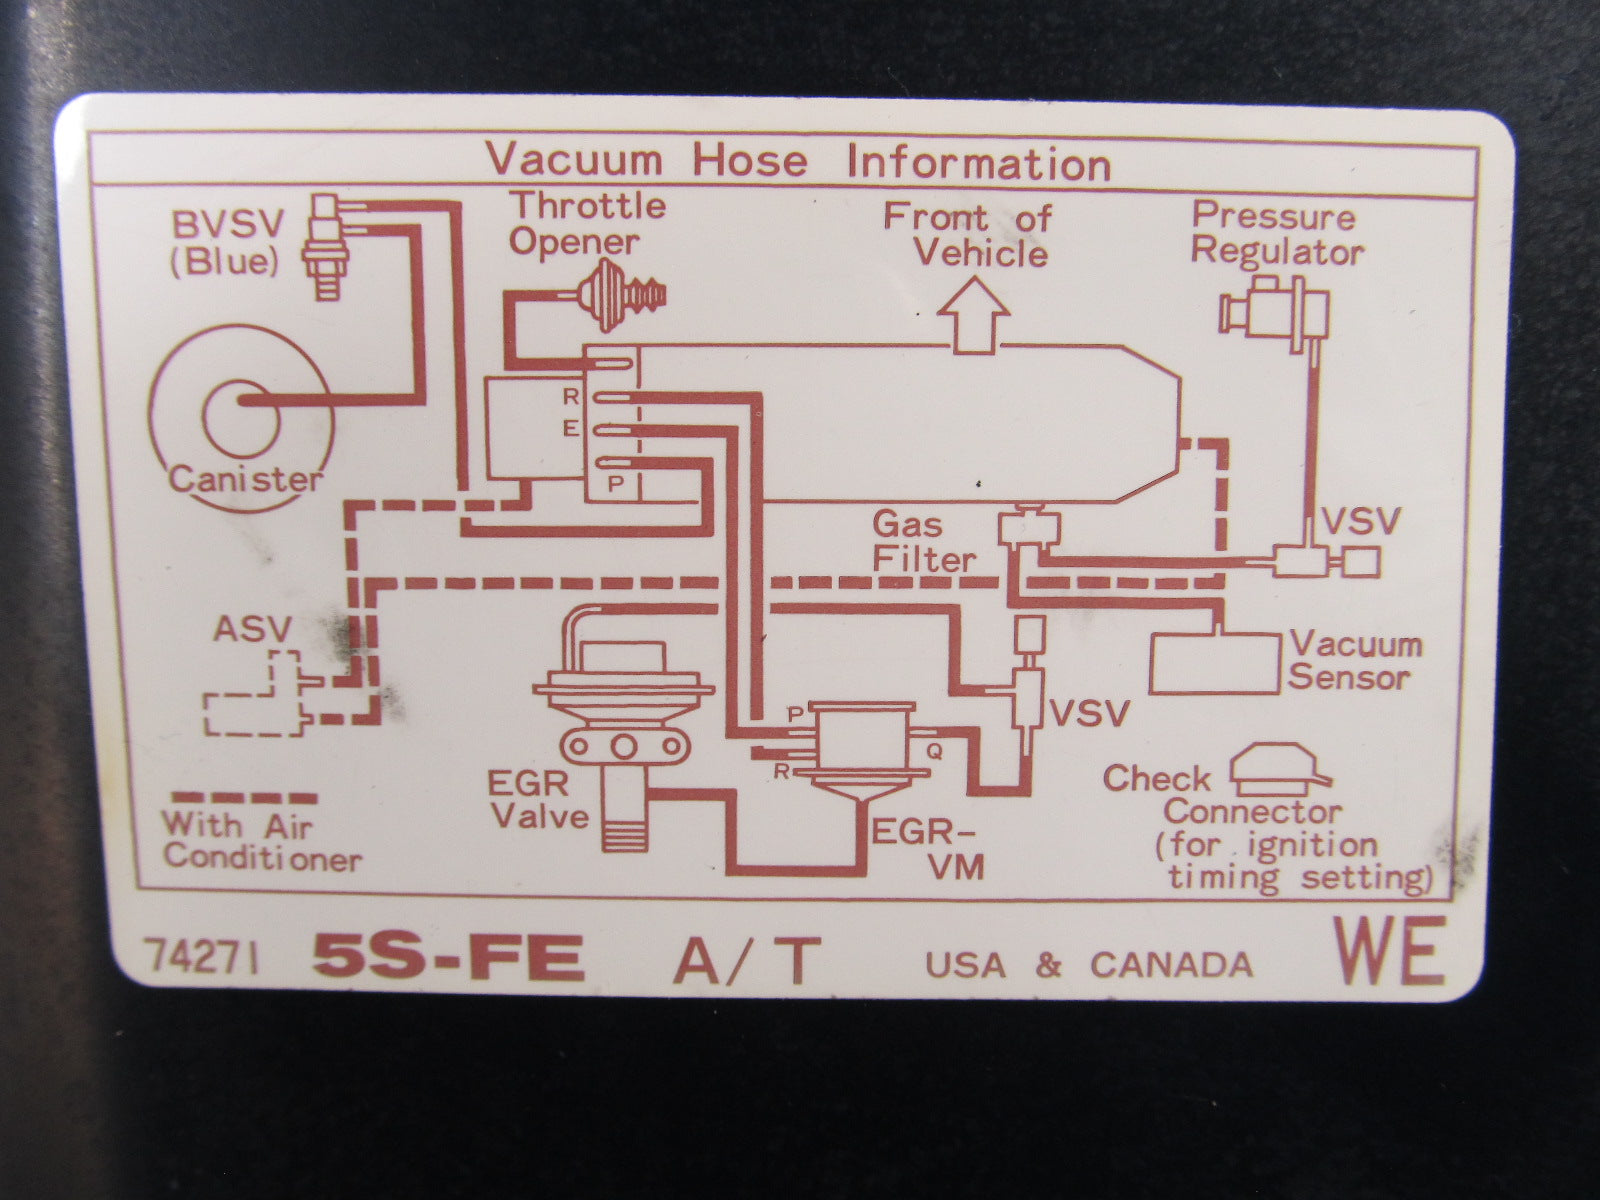 1997 Toyota Camry Vacuum Hose Diagram Electrical Wiring Diagrams 1994 Ignition On 1996